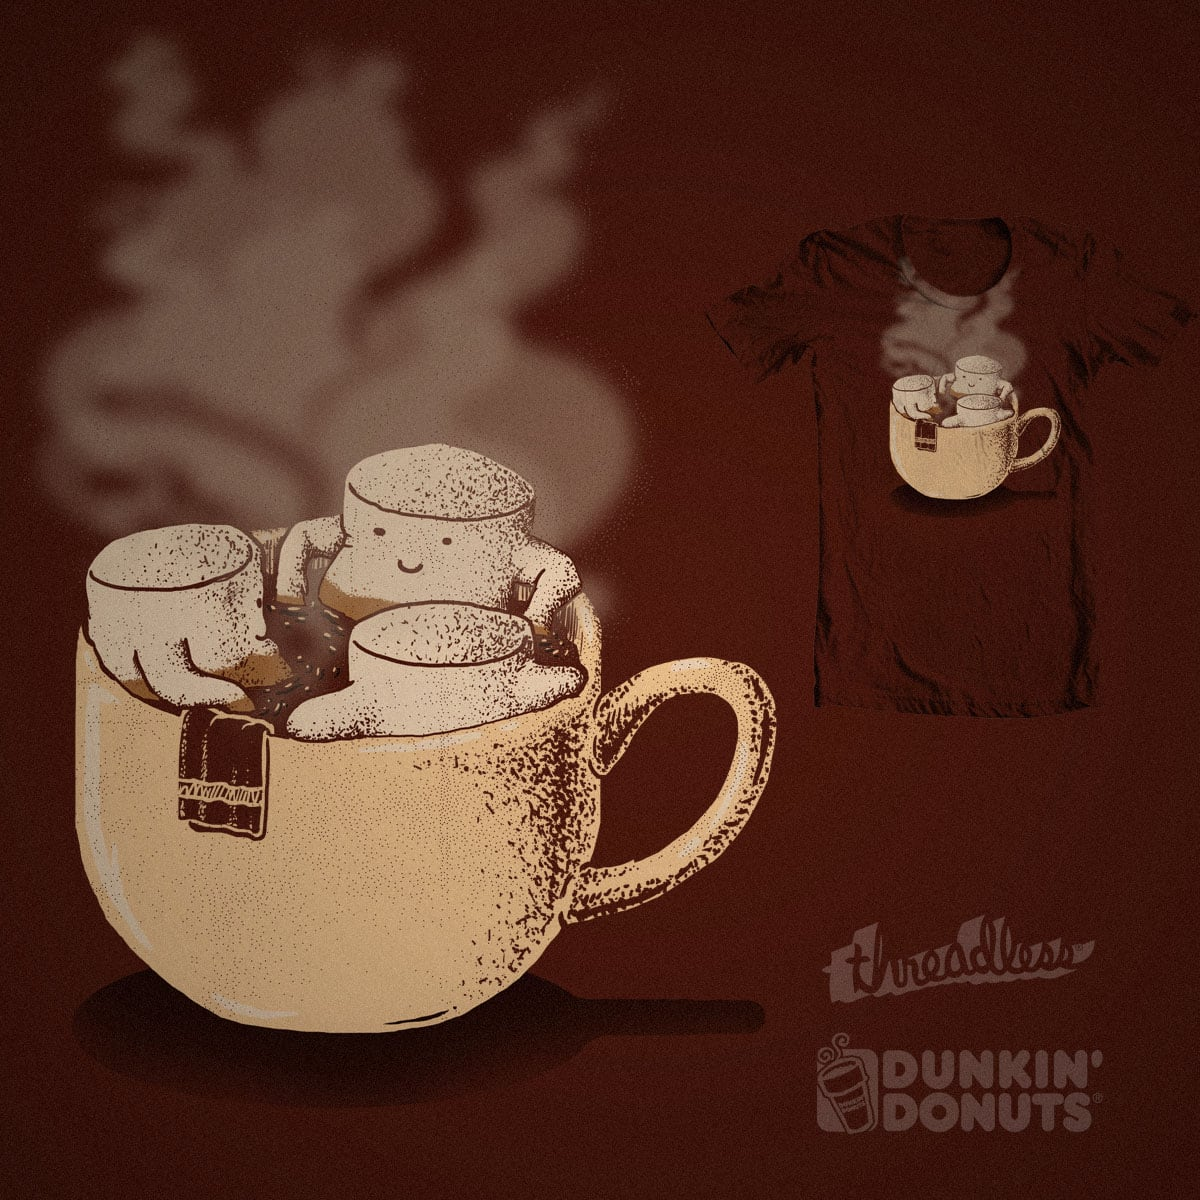 Bath-mallows by lugepuar and Ana lucia Puente on Threadless